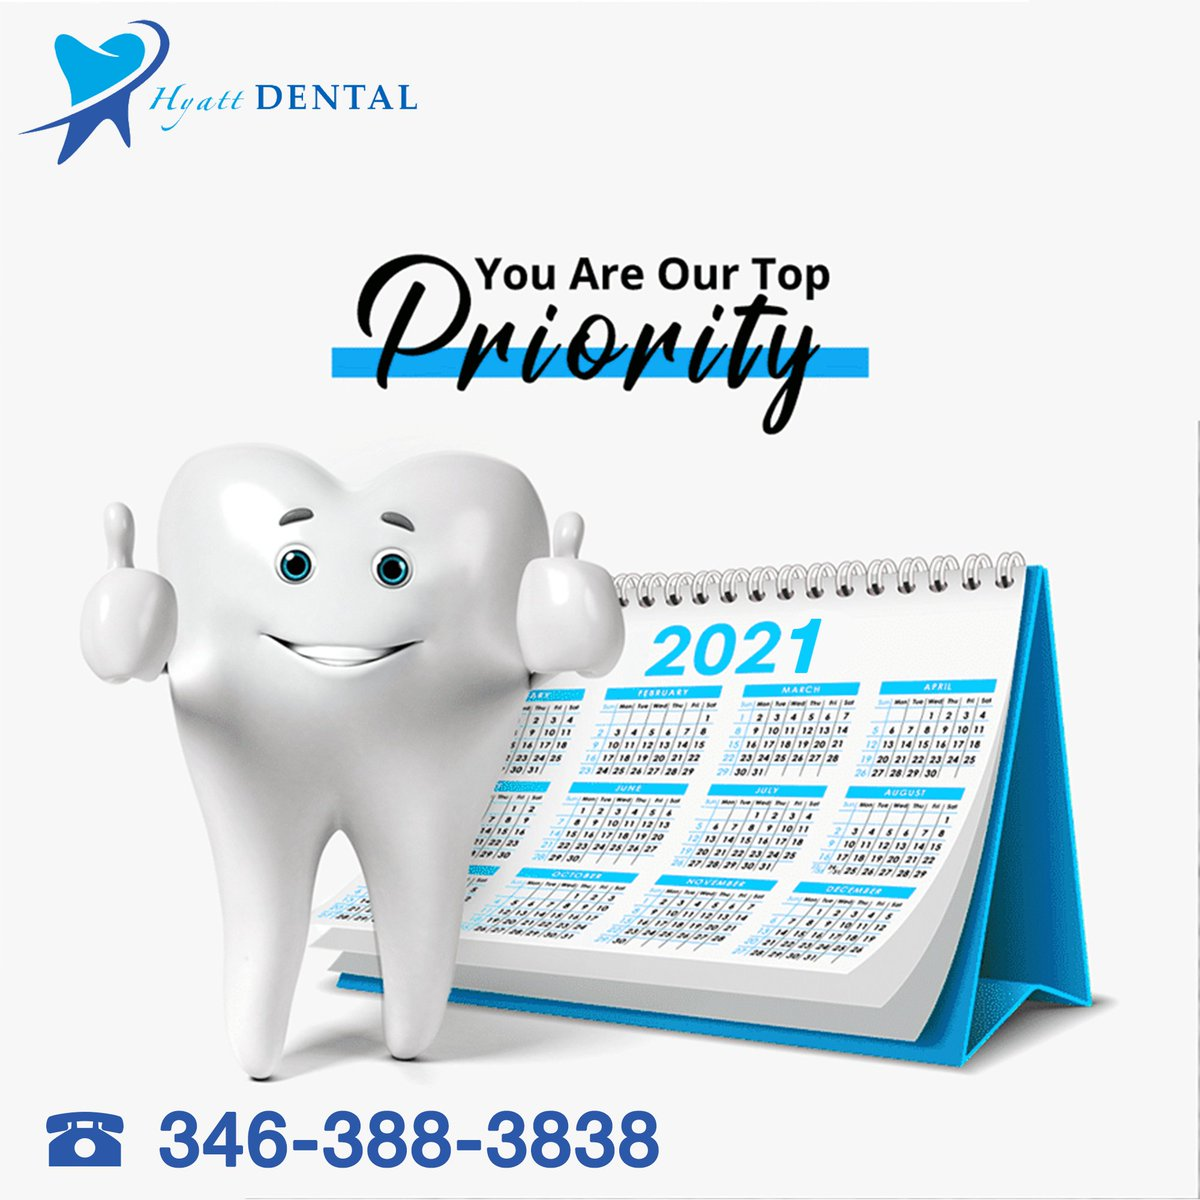 Definitely you are our top PRIORITY ✅ Get use of our offers now! Book your appointment now 😍  Phone 346-388-3838 📱 Adress 8619 Rihcmond ave. St. 700 Houston, TX 77063 📍 #texas#houstontexas #houston #texasdentist #texasforever #texasmade #texaslife #madeintexas #texascountry